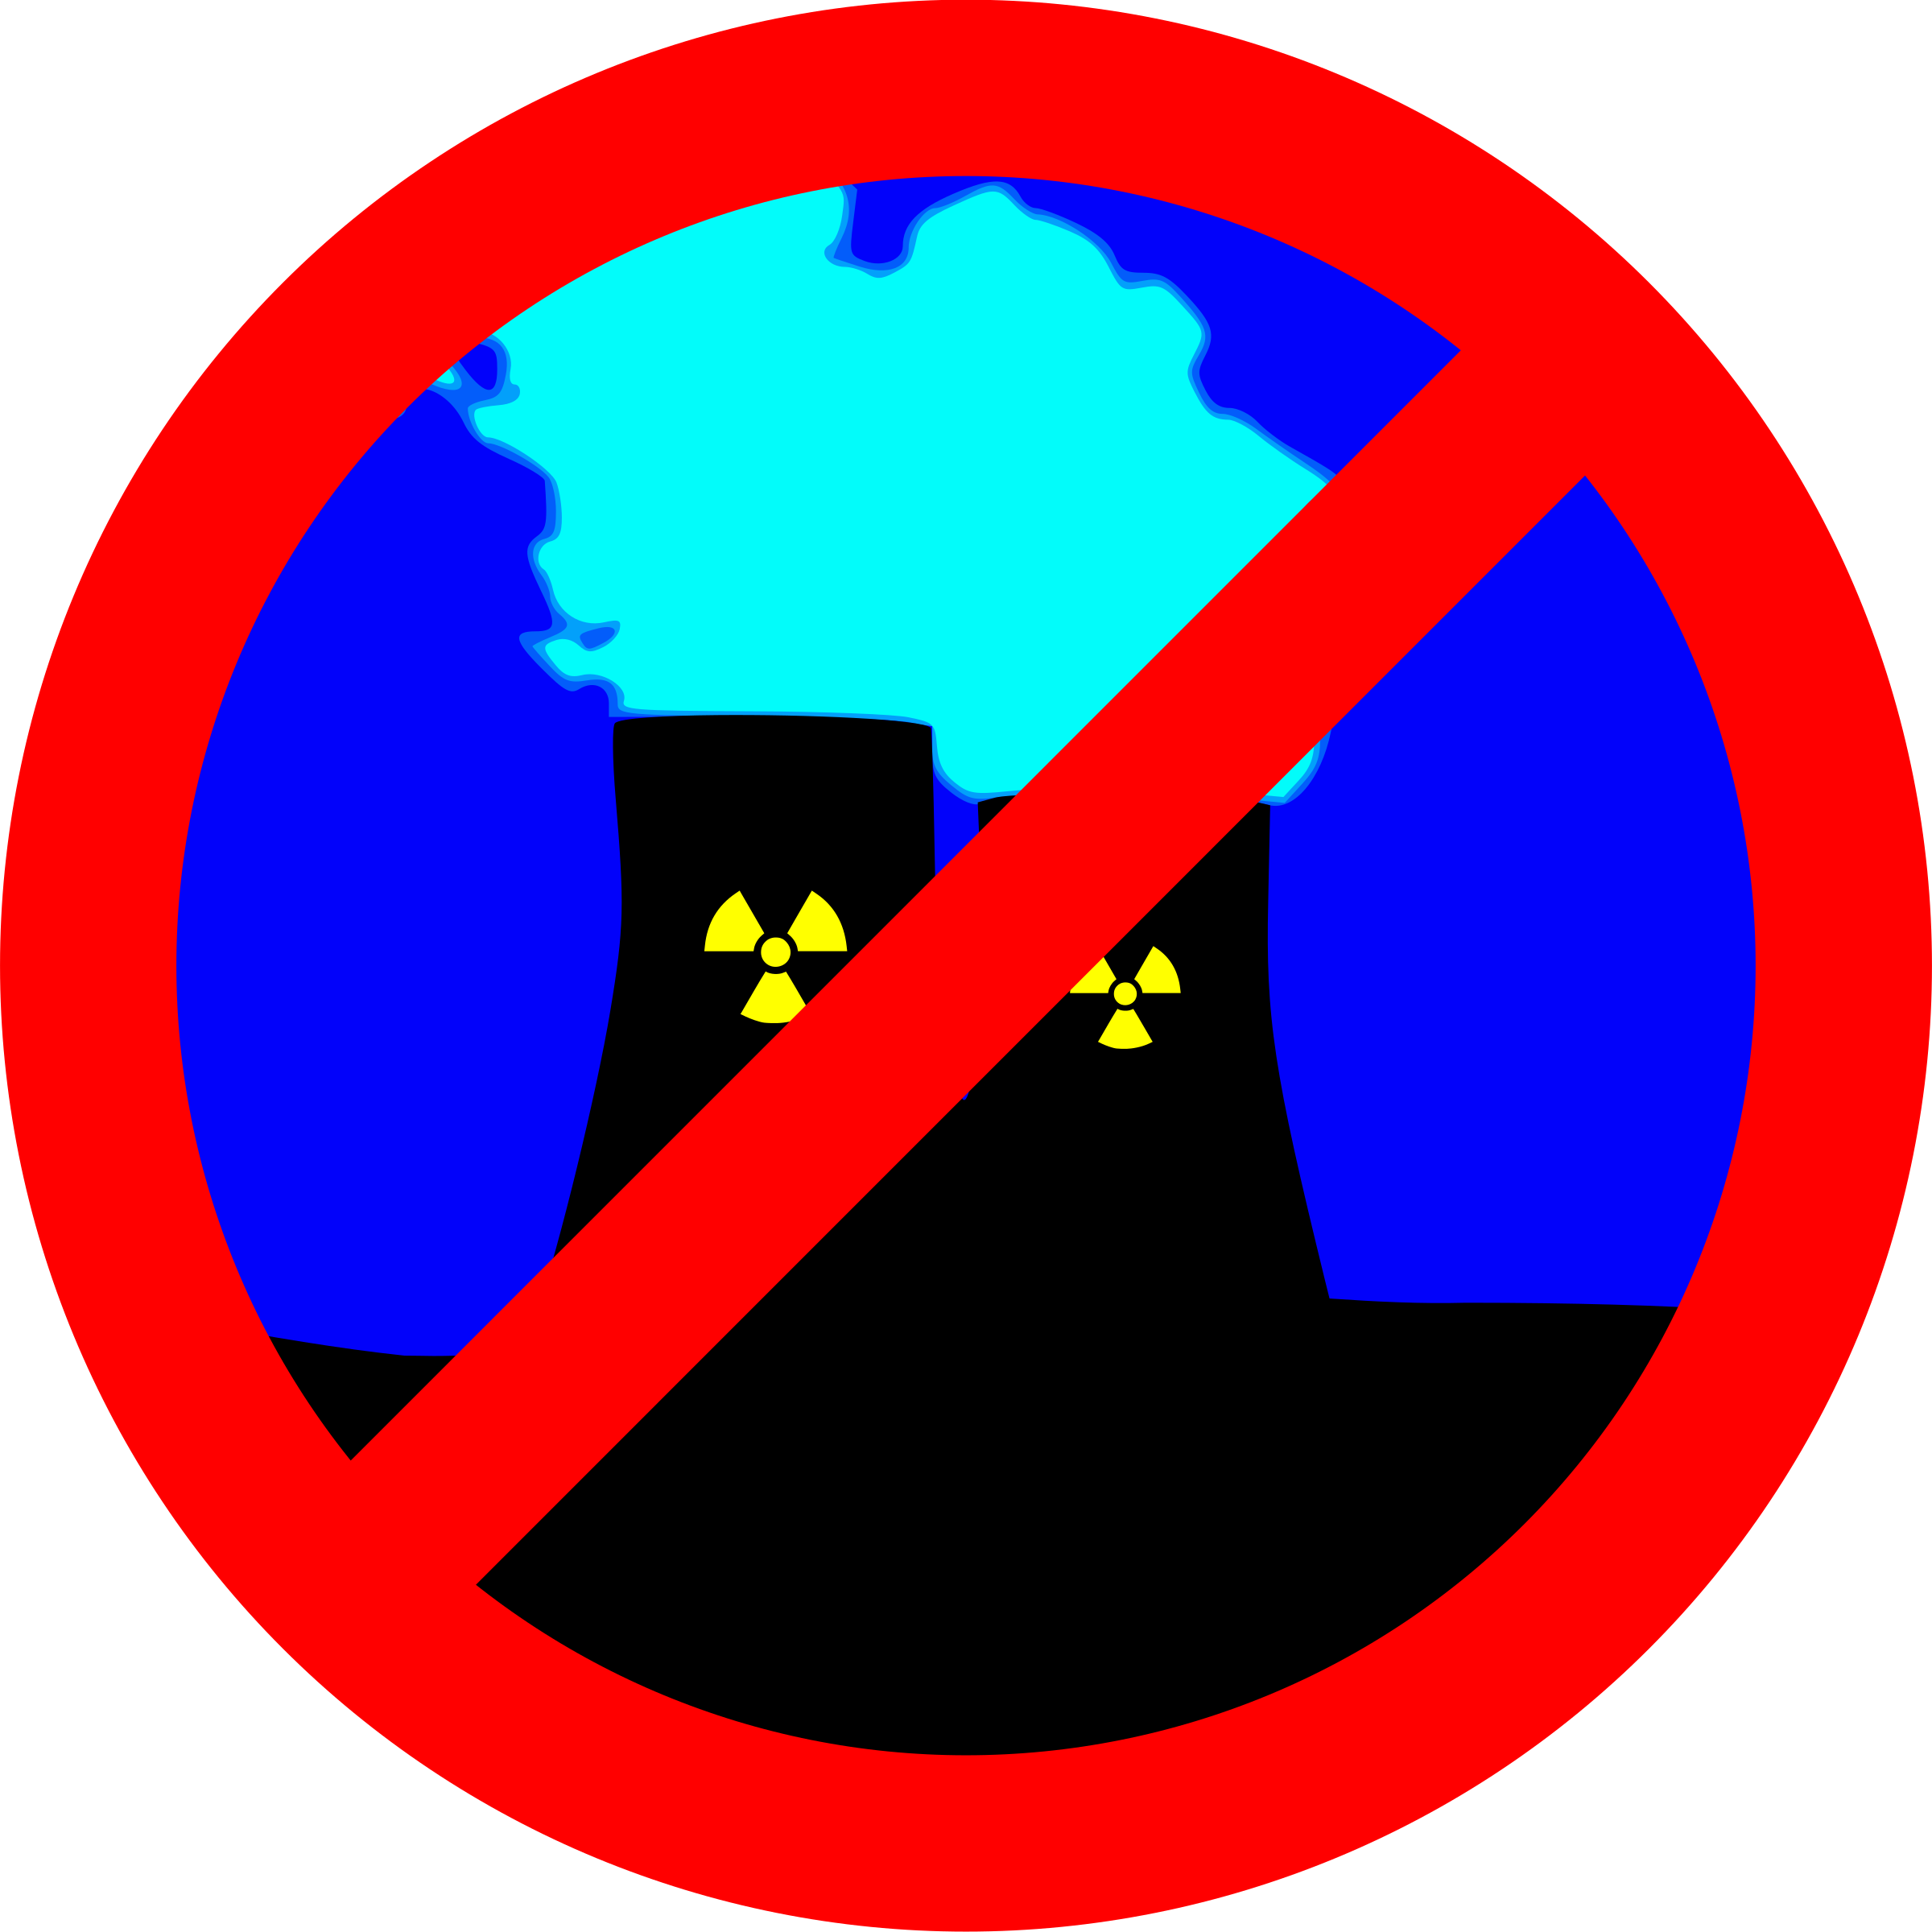 NUCLEAR POWER? - NO THANKS! by worker